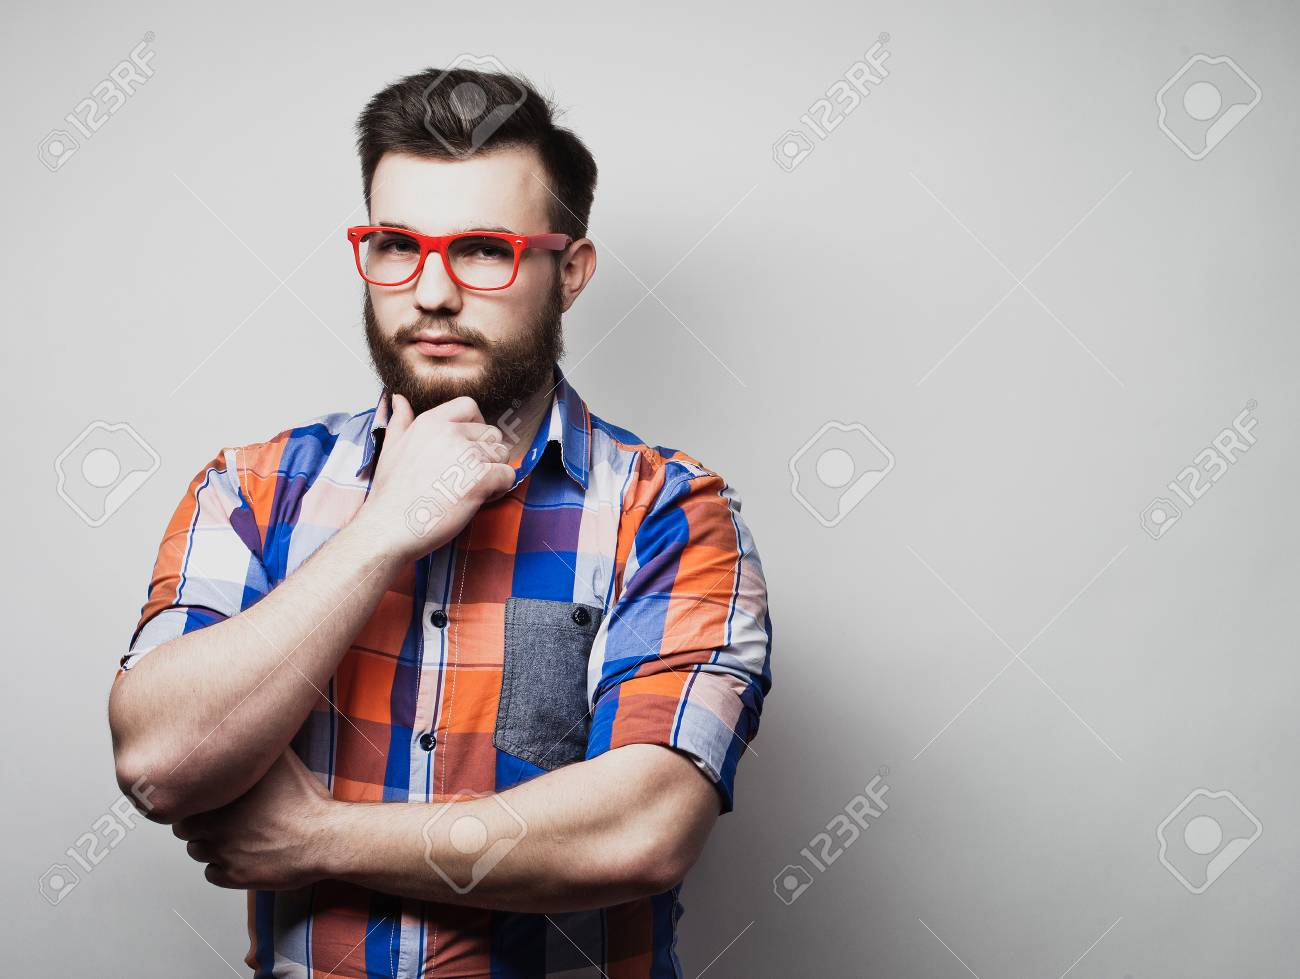 21c8ee062f3 Serious bearded man wearing eyeglasses and plaid shirt. Stock Photo -  101208533